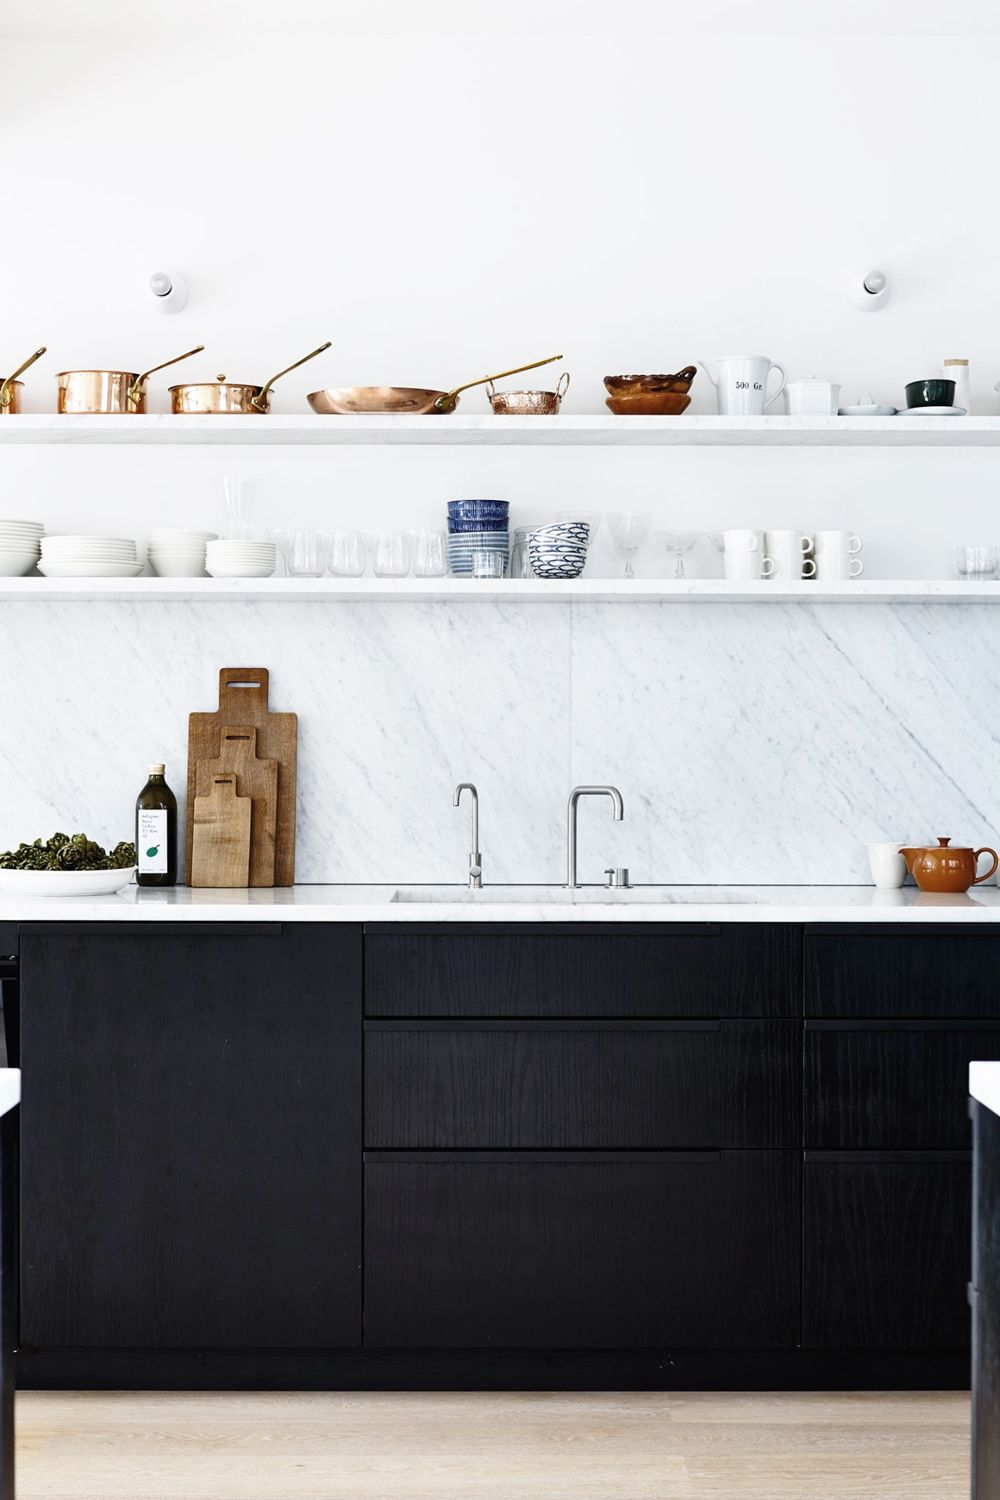 ilaria fatone _ shelf in minimal kitchen _ long shelf on wall